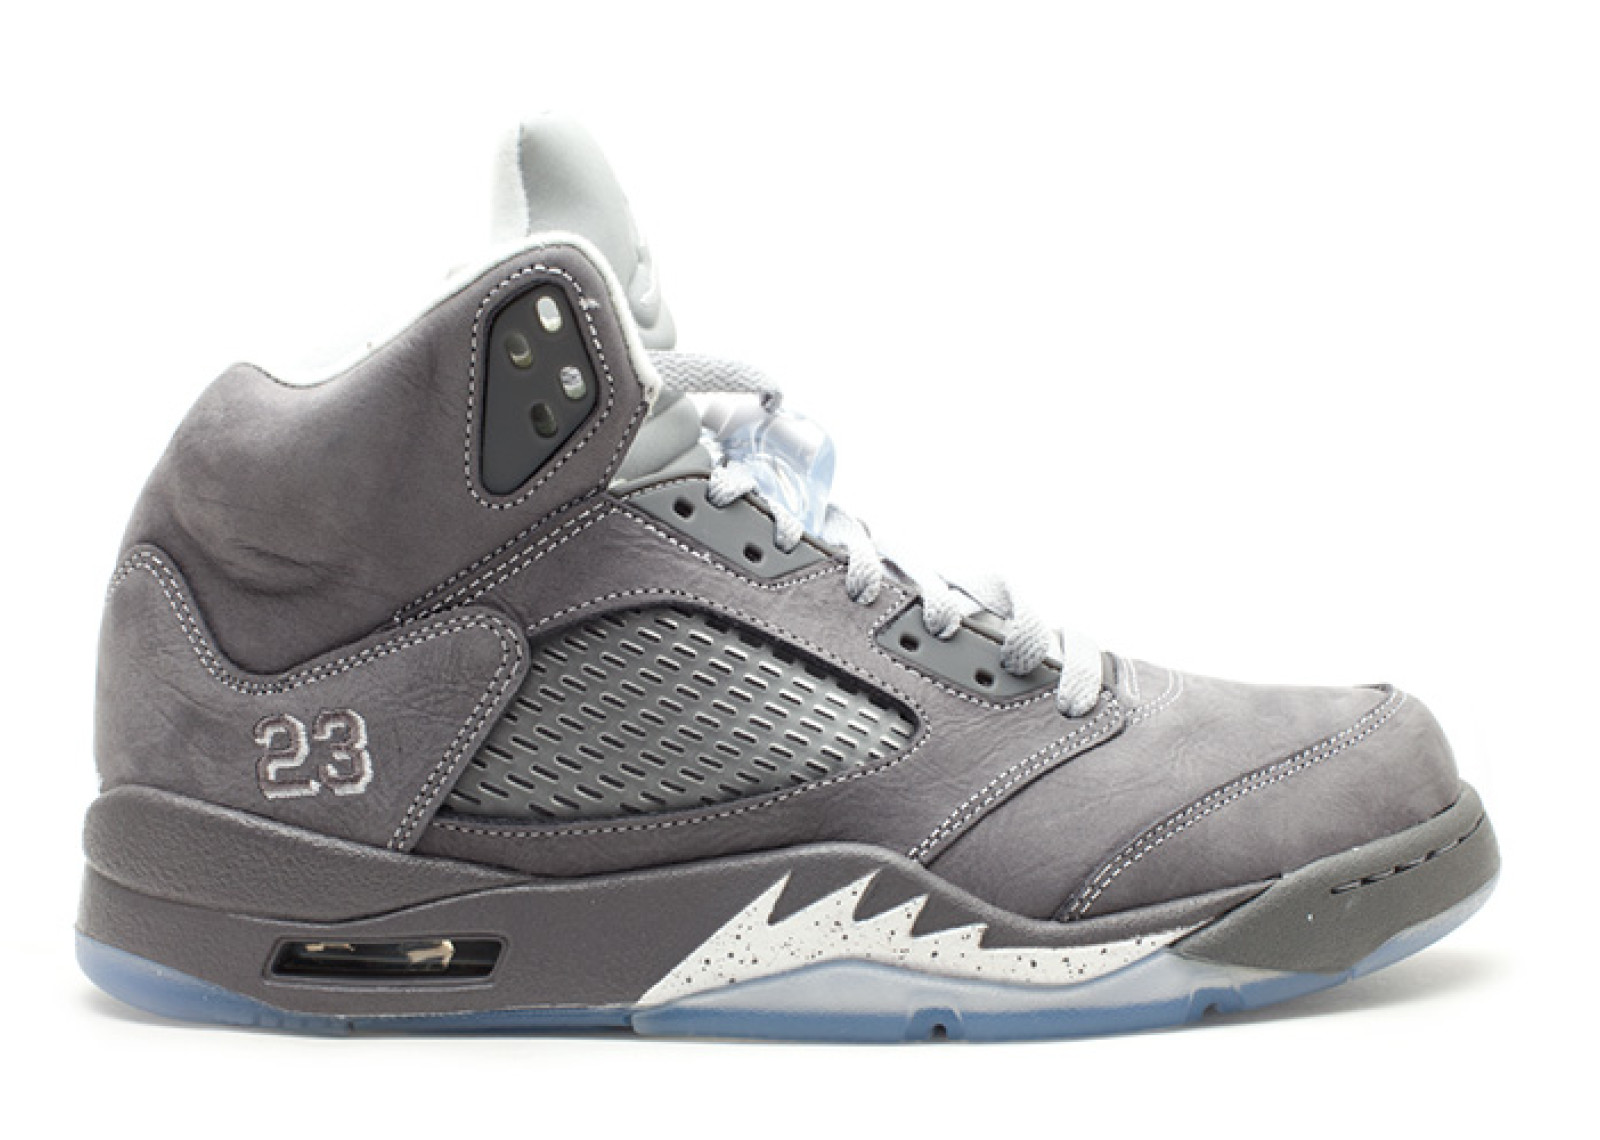 competitive price 45bc5 f4504 Air Jordan - Men - Air Jordan 5 Retro 'Wolf Grey' - 136027 ...